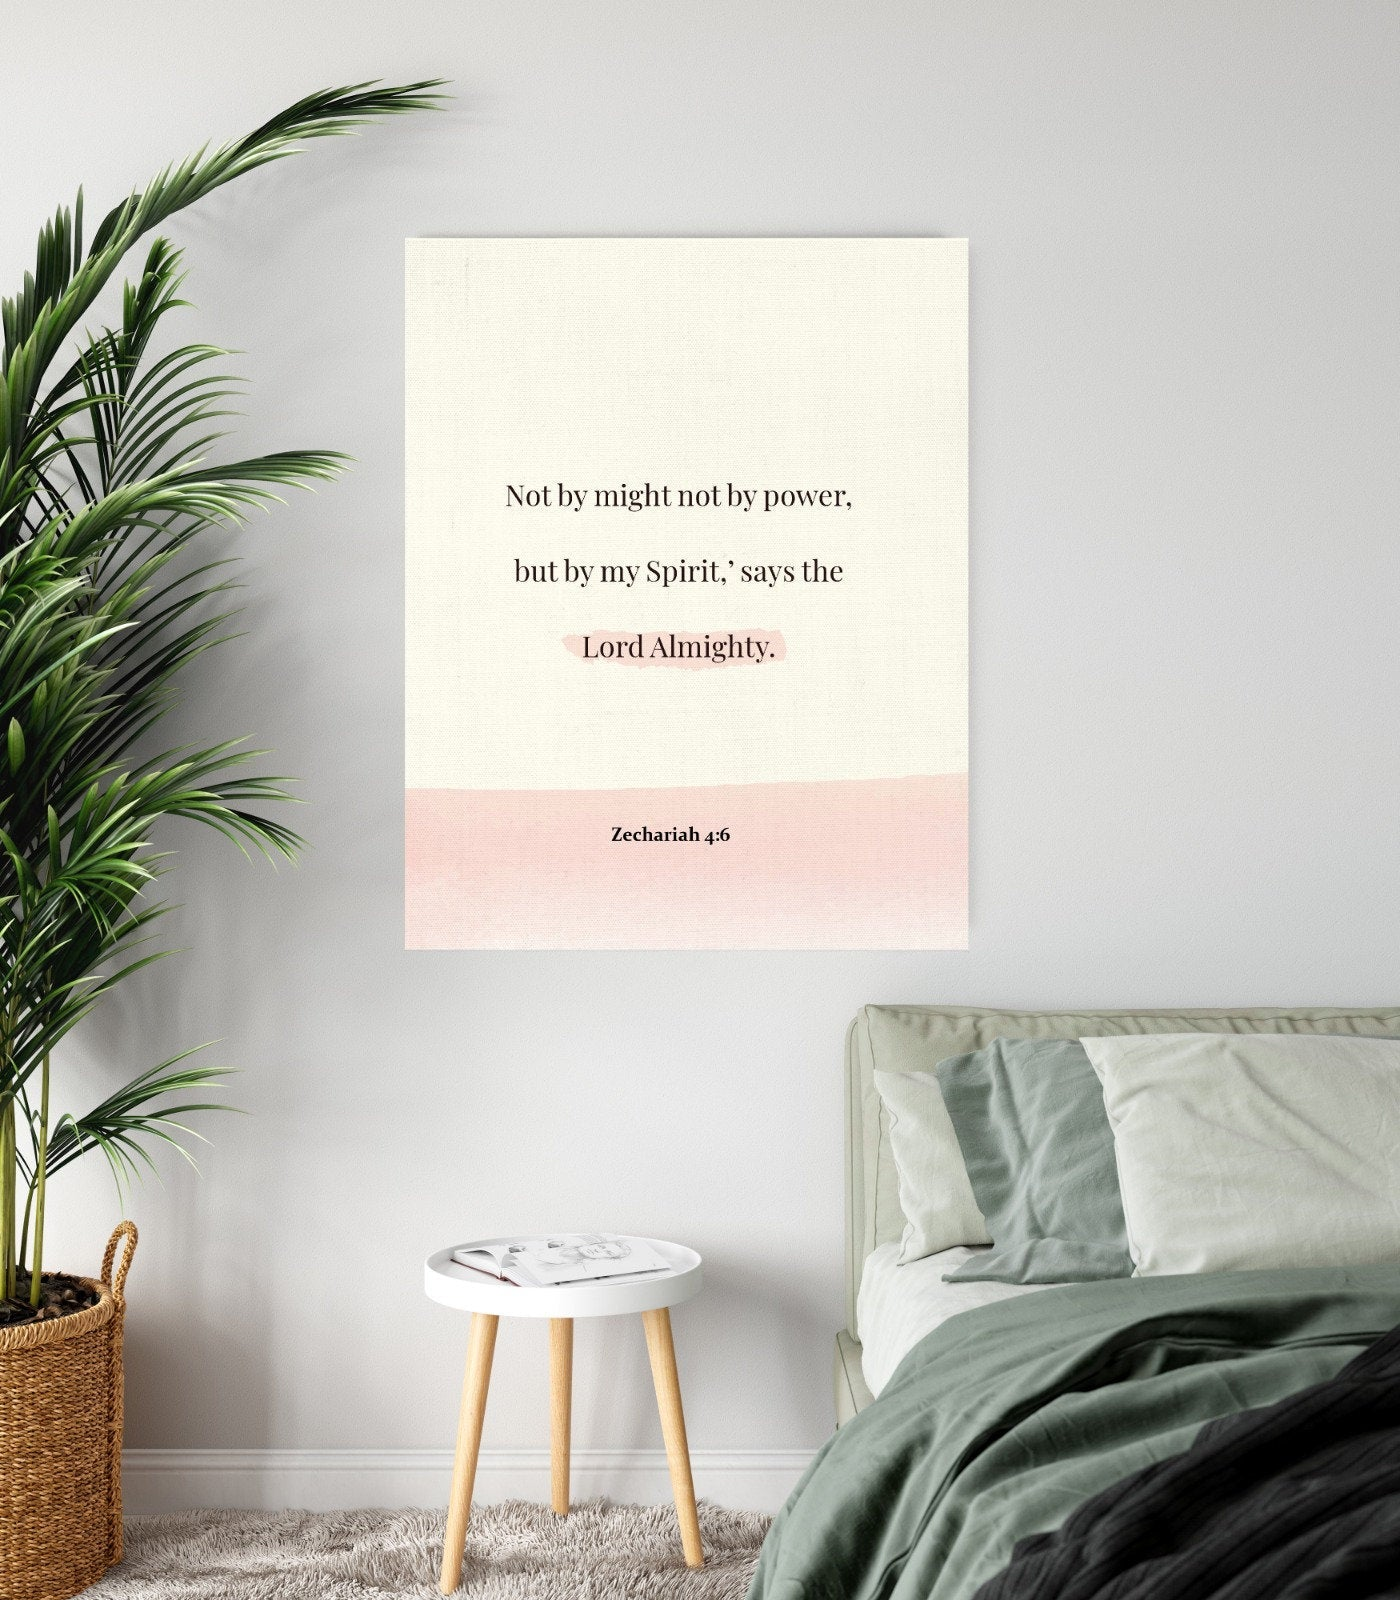 Biblical Verse Wall Art Canvas Decor Christian Home Decor Gifts for All Occasions. Explore Now!